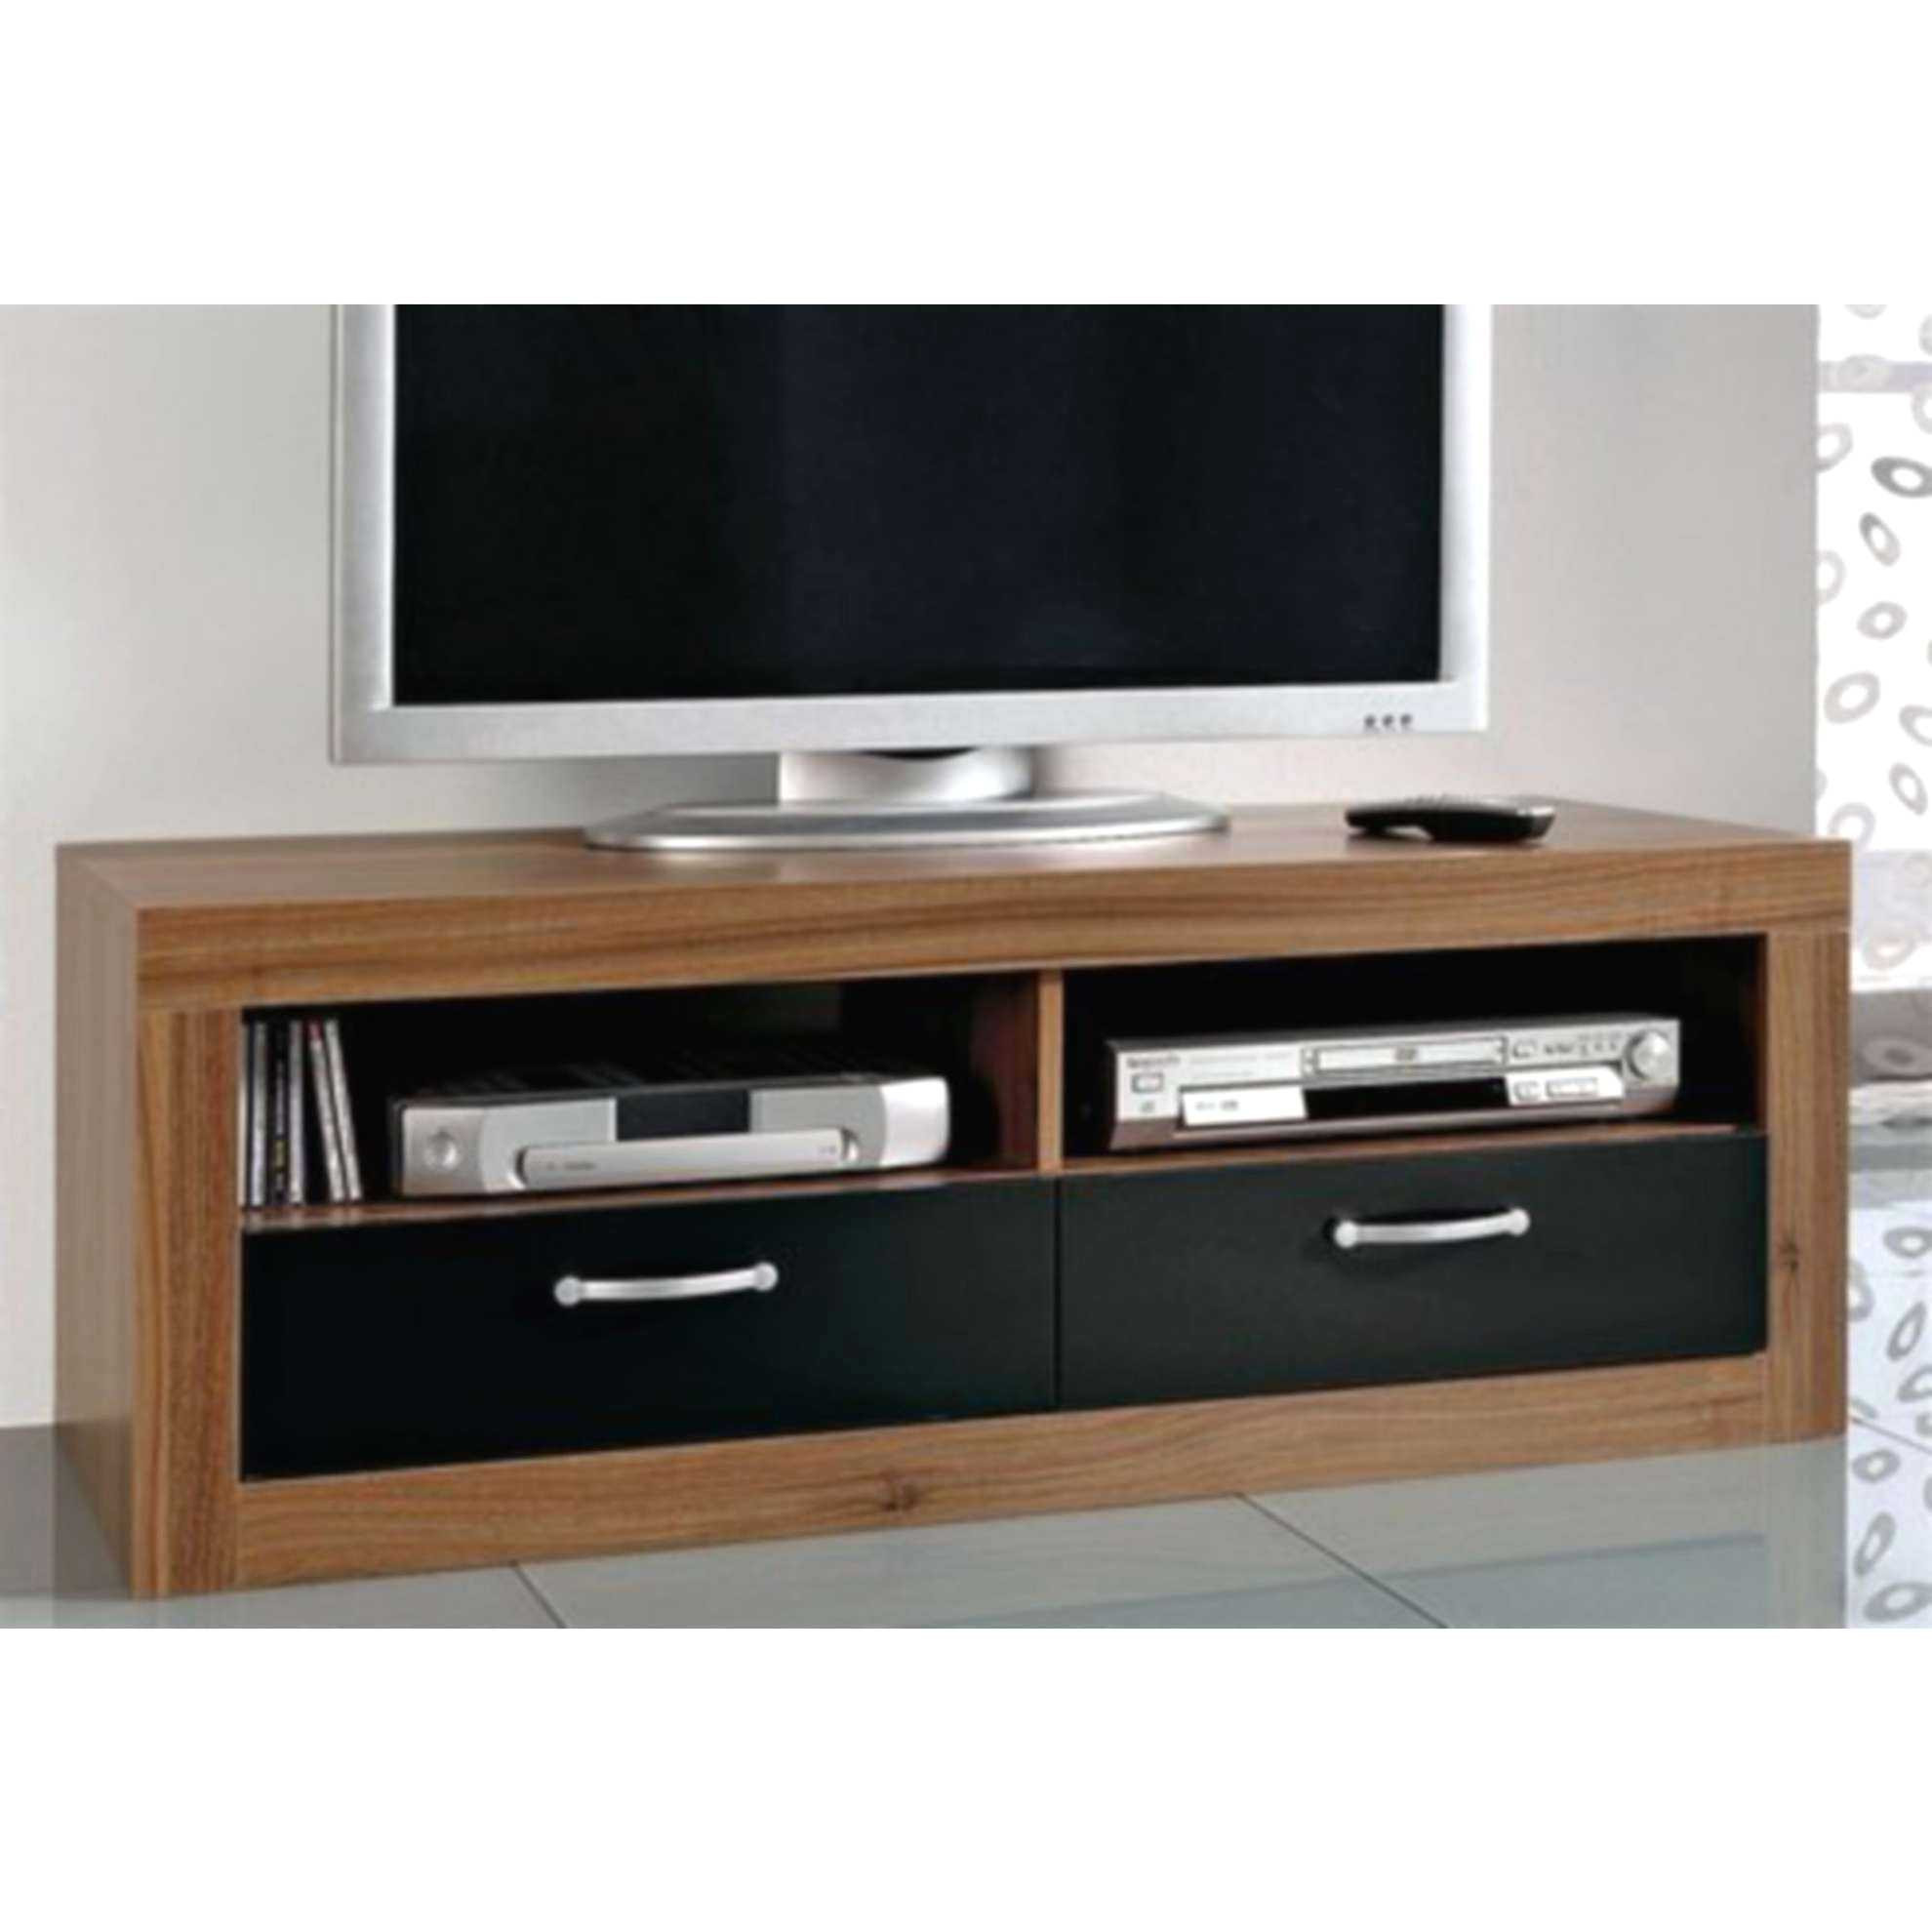 Meuble tv angle 3 suisses